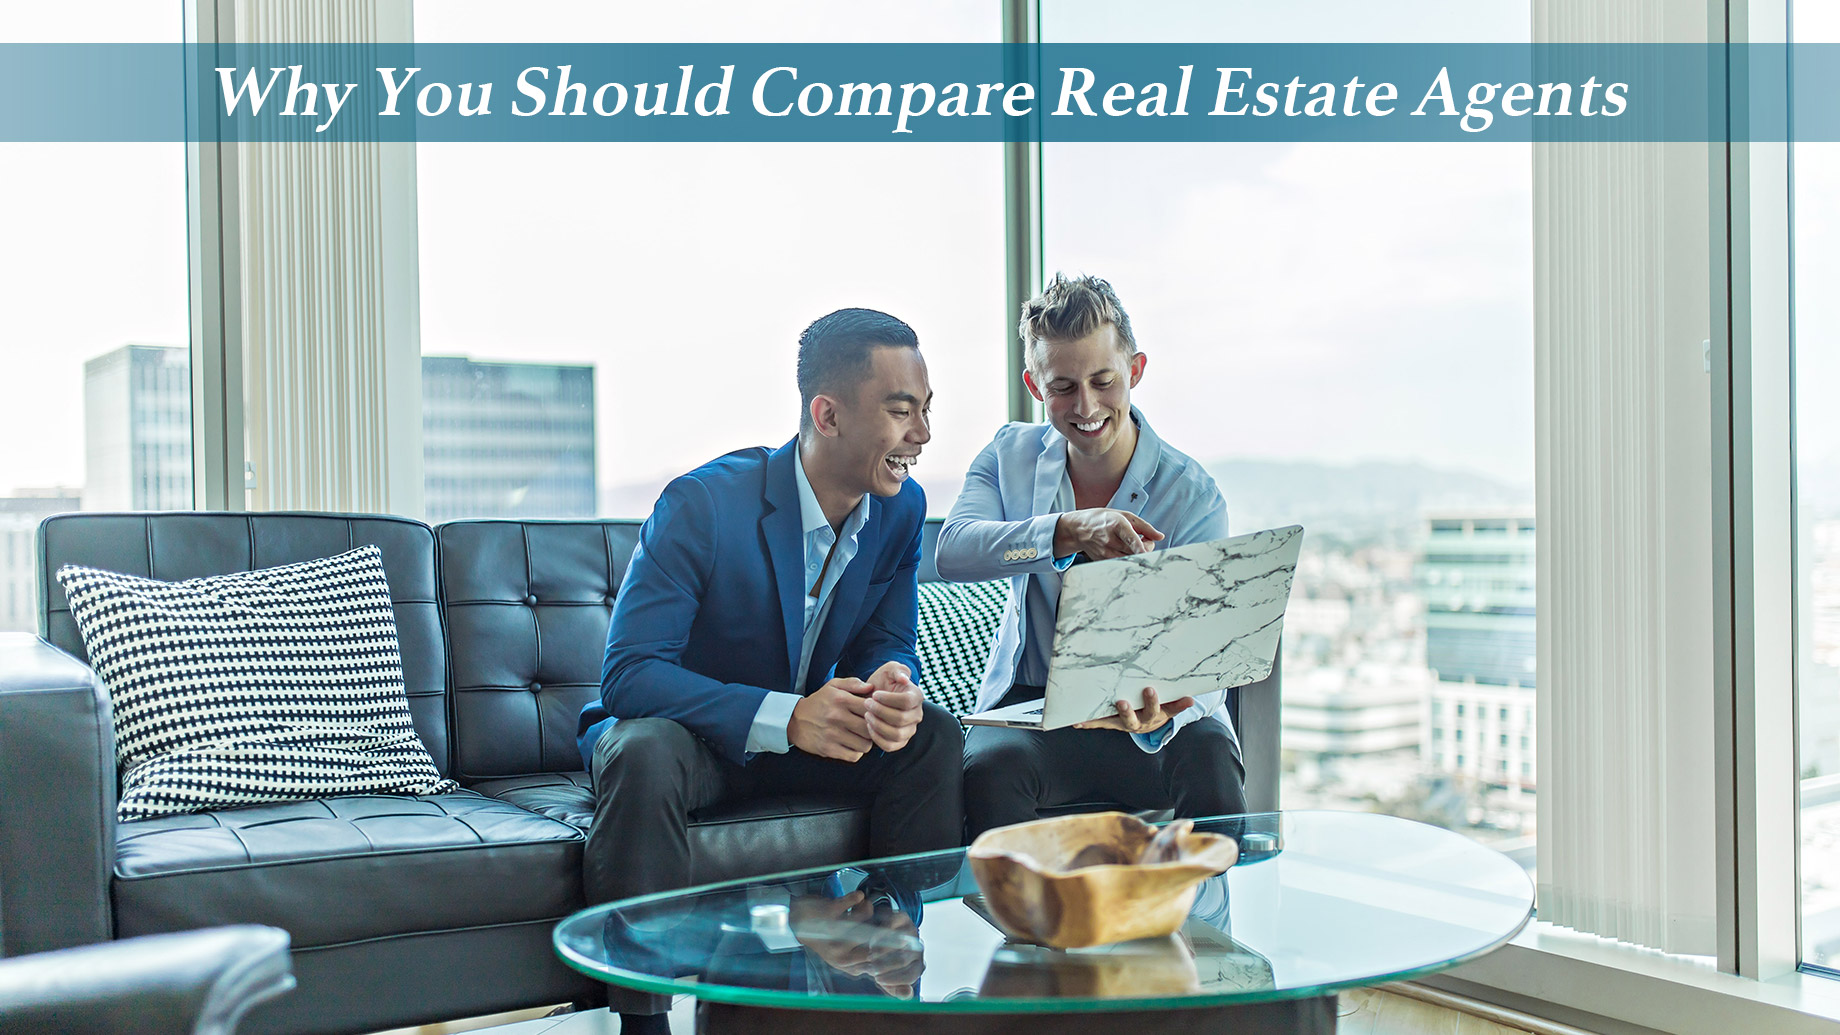 Why You Should Compare Real Estate Agents